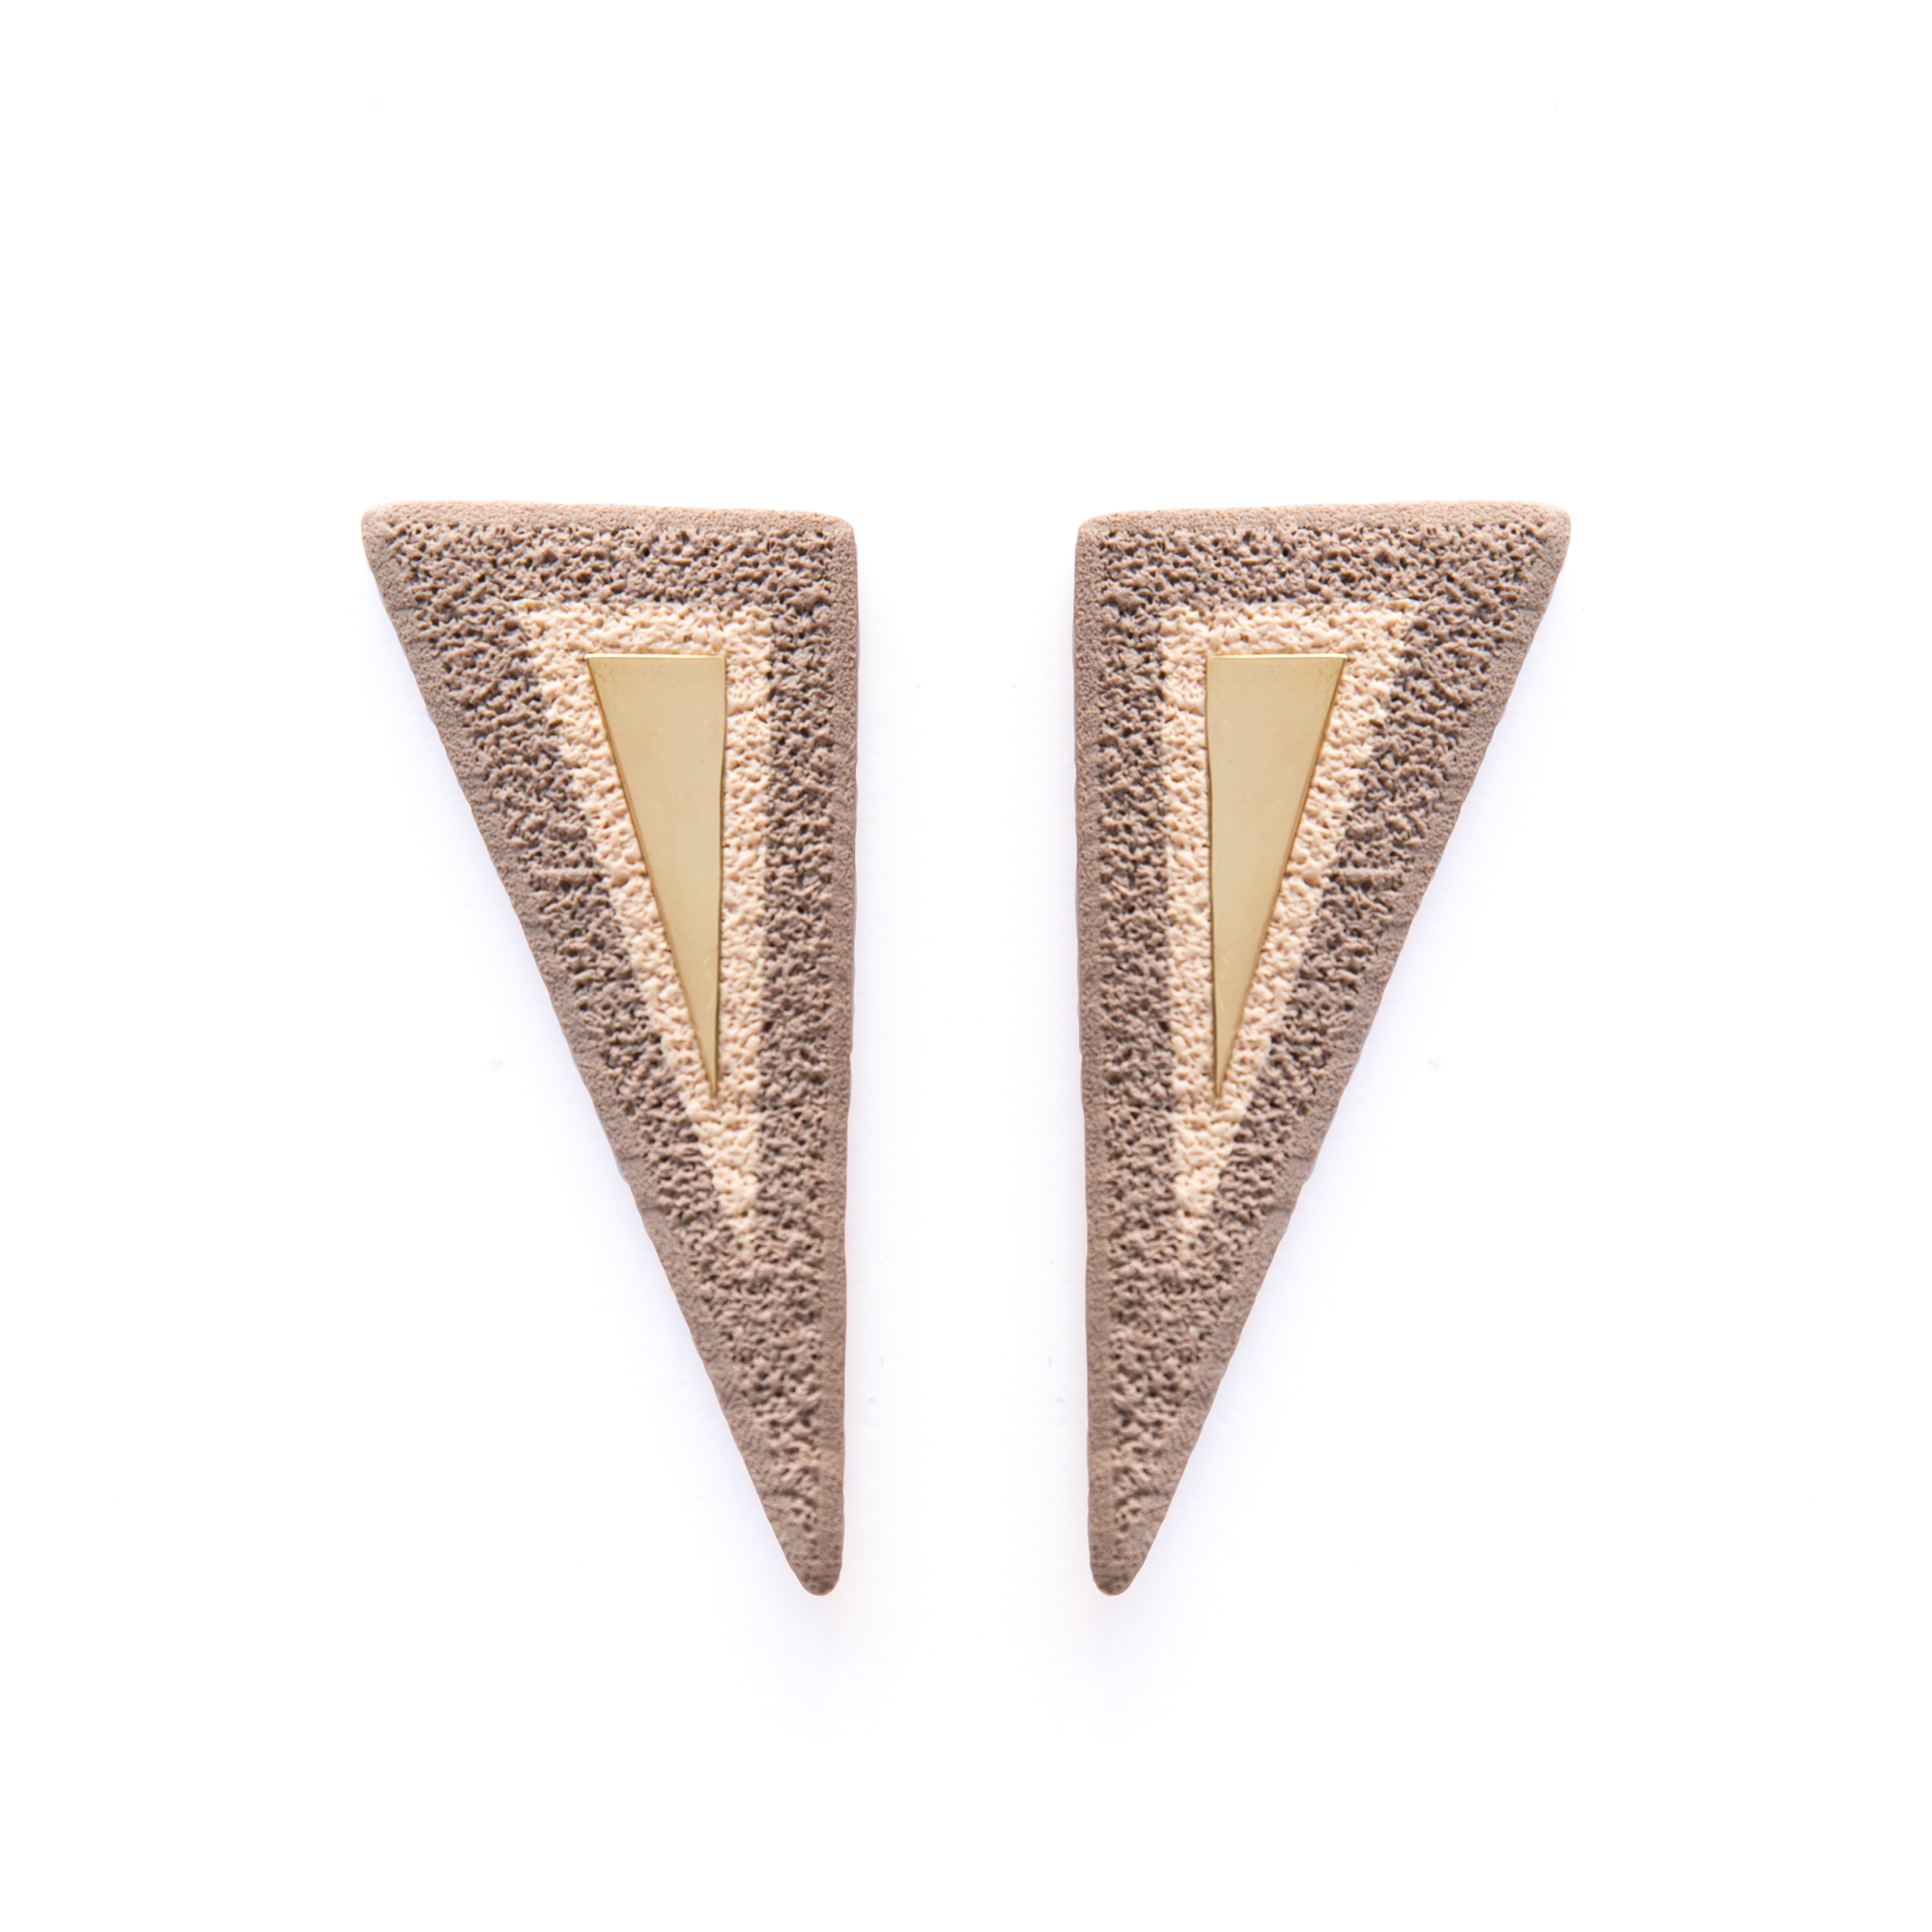 LimeLight jewelry collection by Katerina Sfinari geometric modern polymer clay handmade earrings